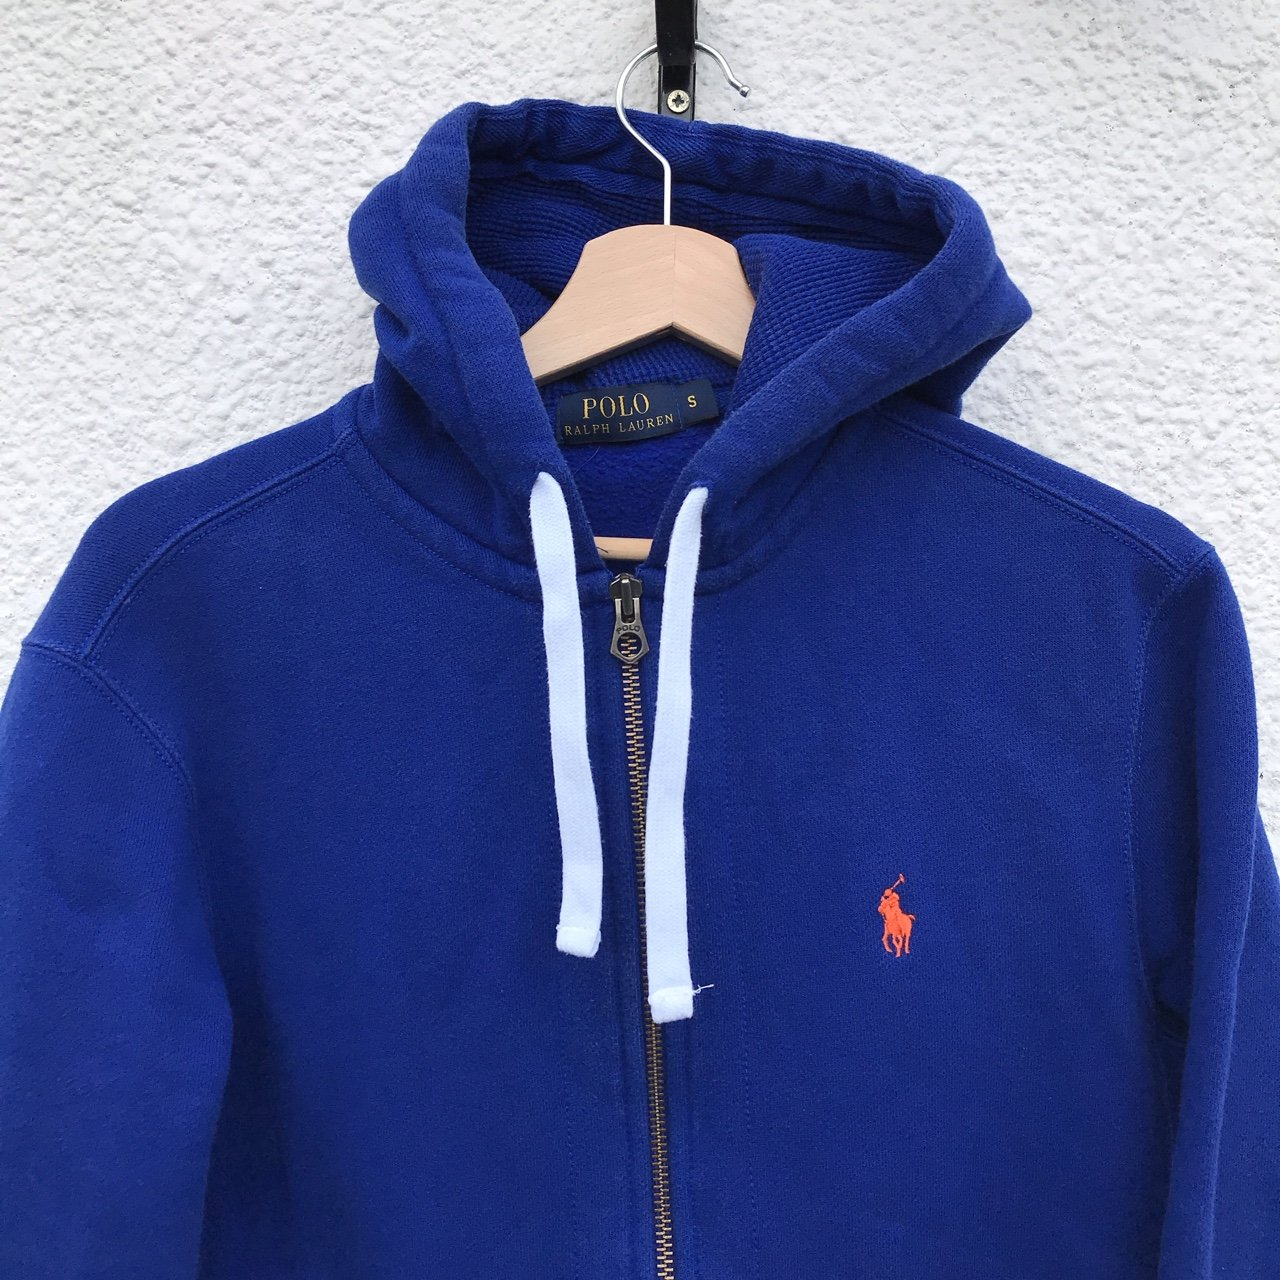 Men S Polo Ralph Lauren Zip Up Hoodie 7 5 10 Condition Depop